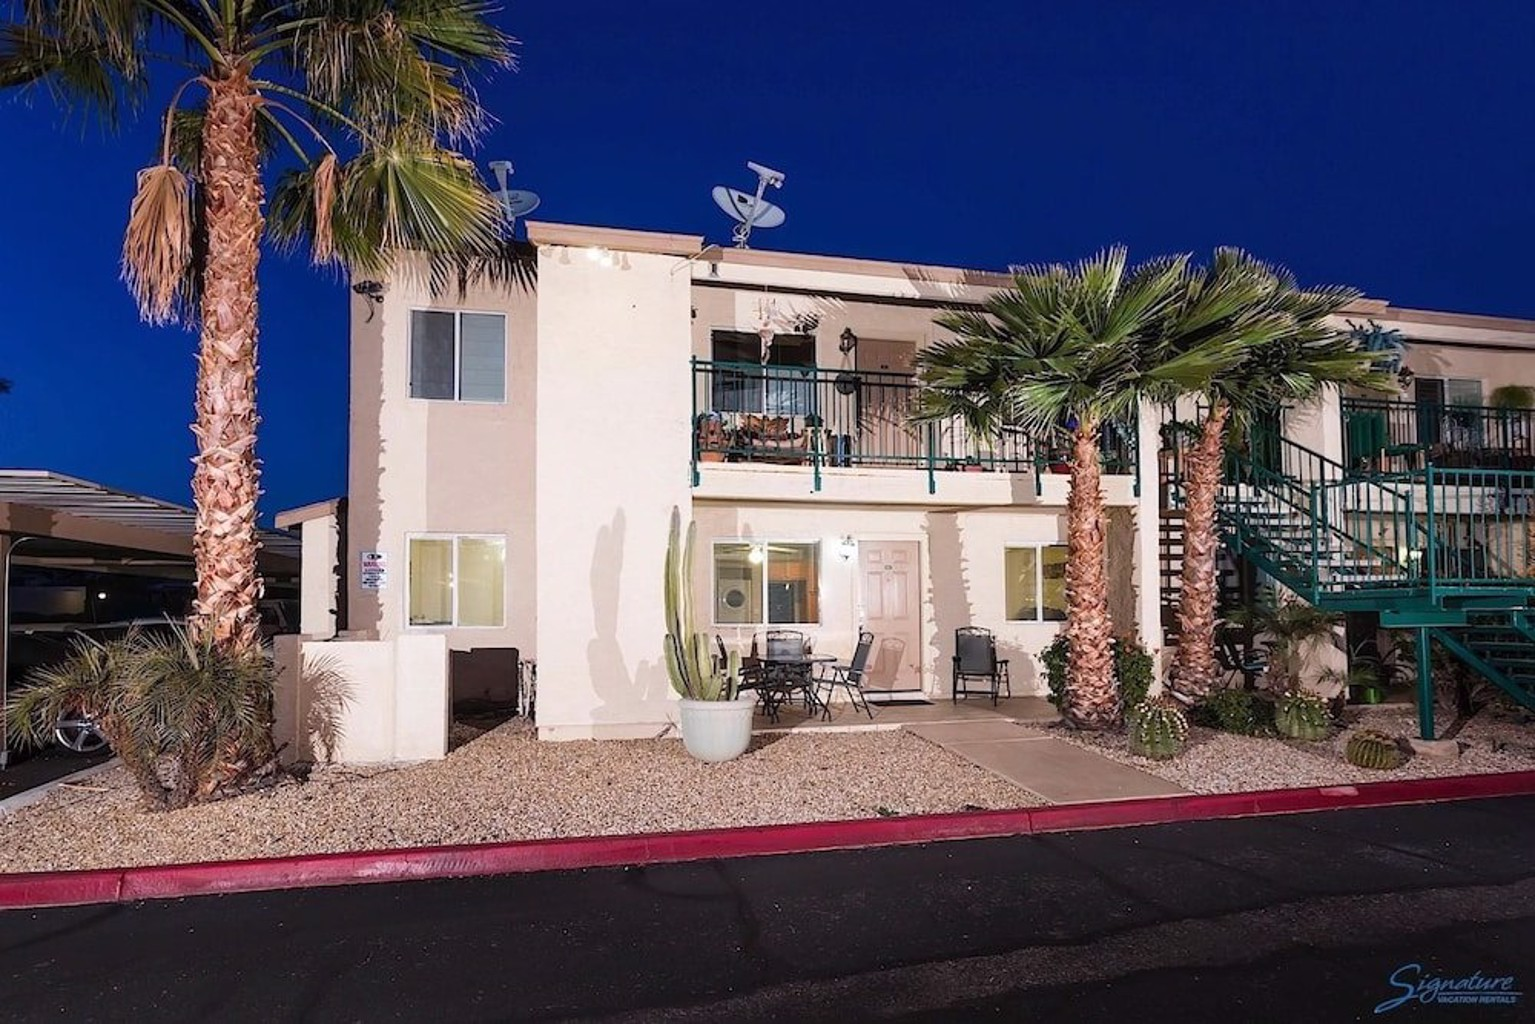 Just Darling By Signature Vacation Rentals